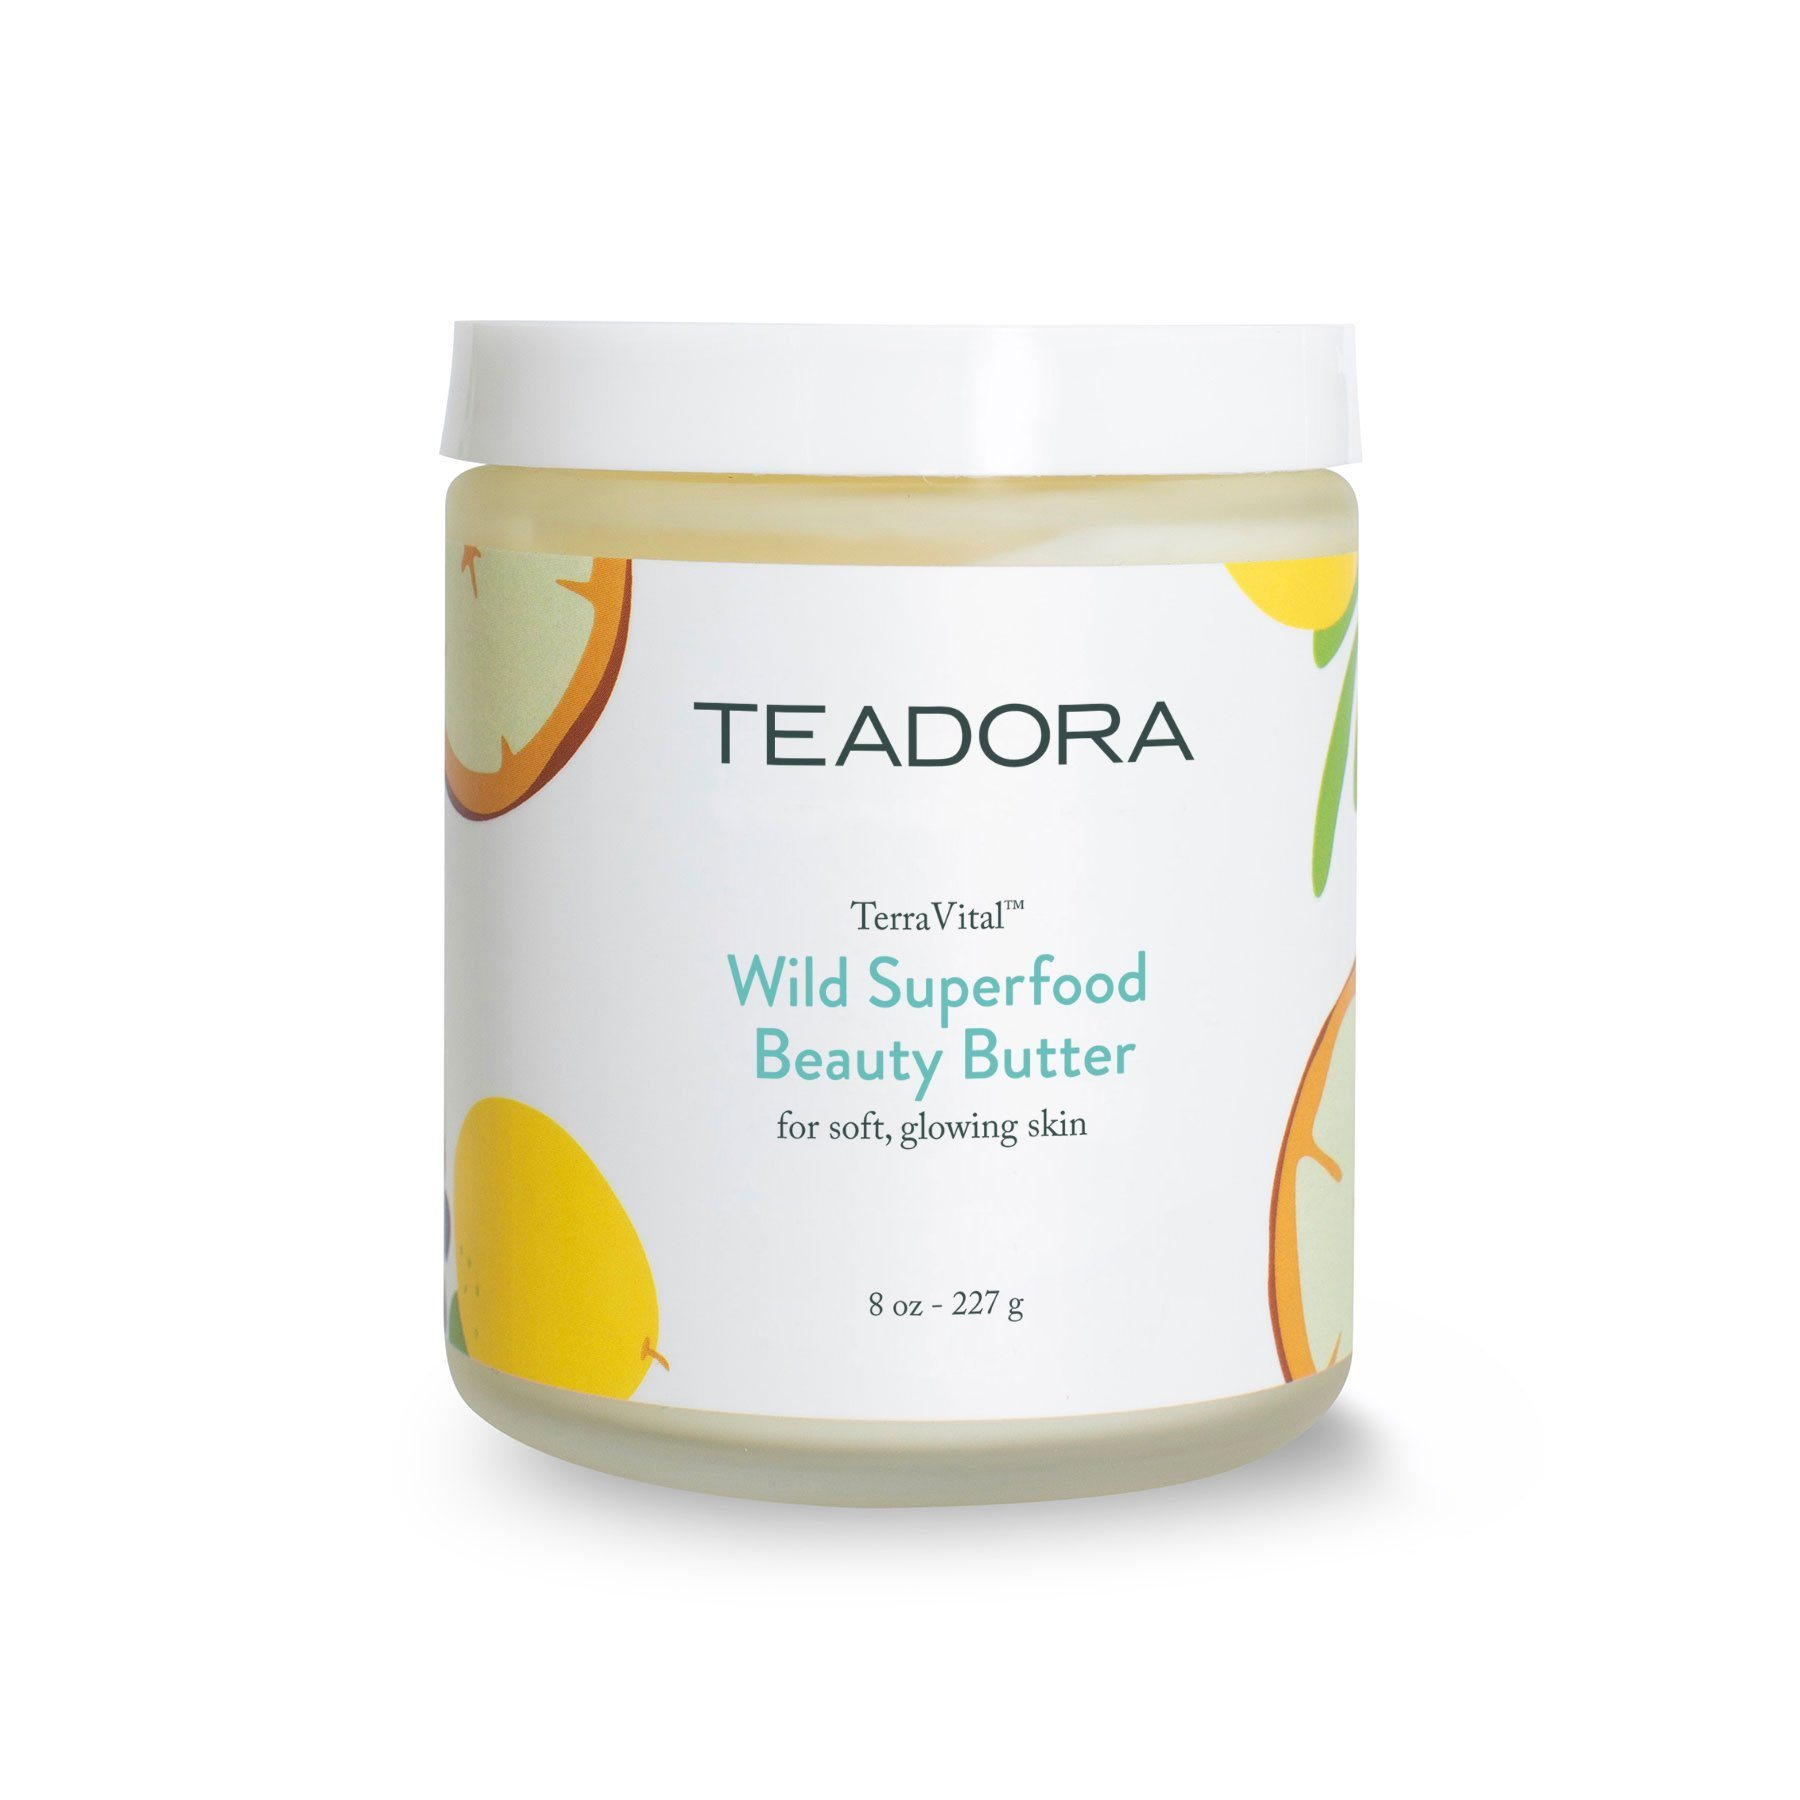 Wild Superfood Beauty Butter - Teadora